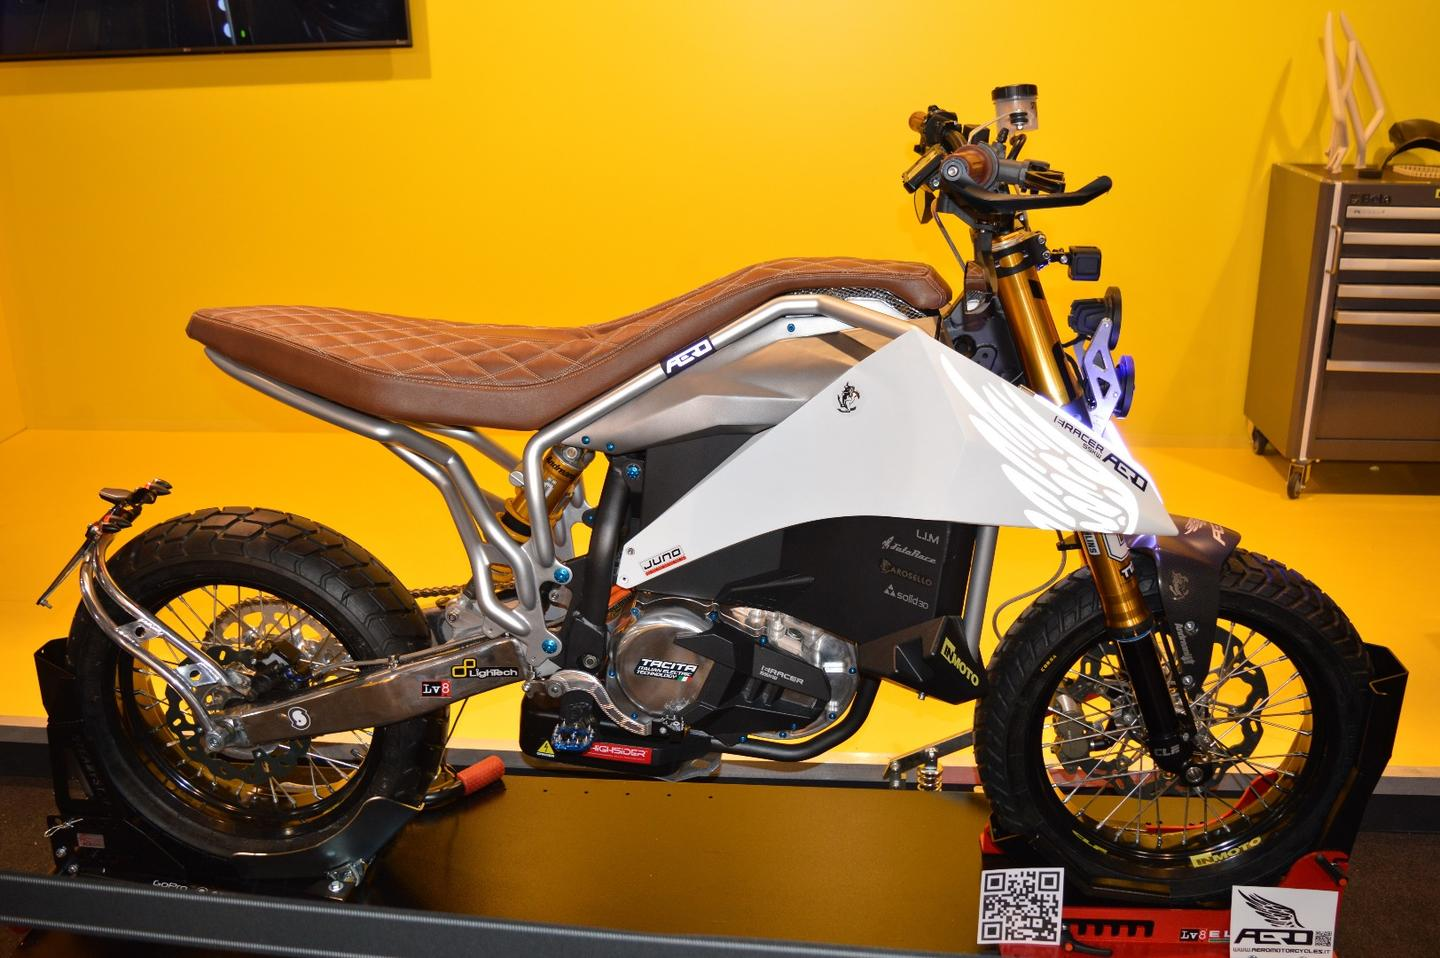 In pictures: The electric side of EICMA